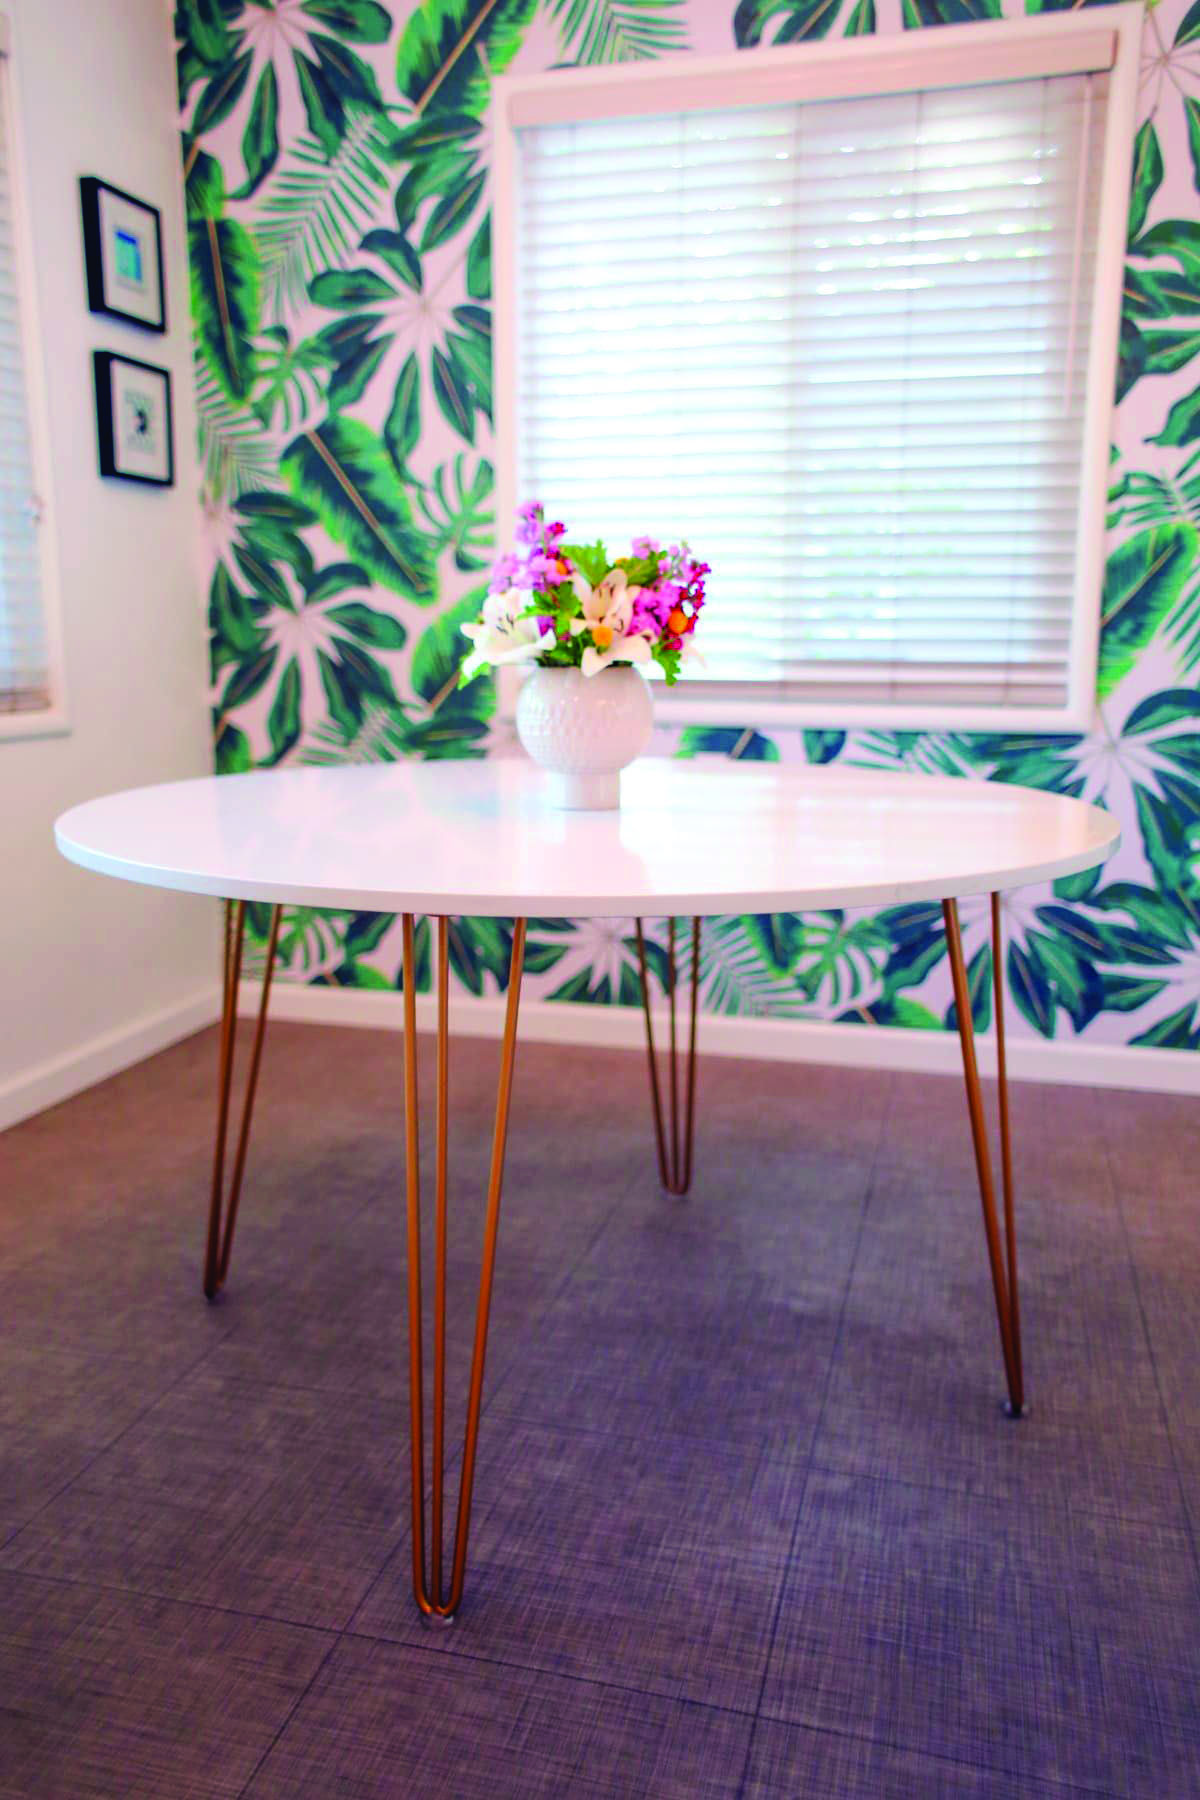 8 Small Cooking Area Table Suggestions For Your Property Round